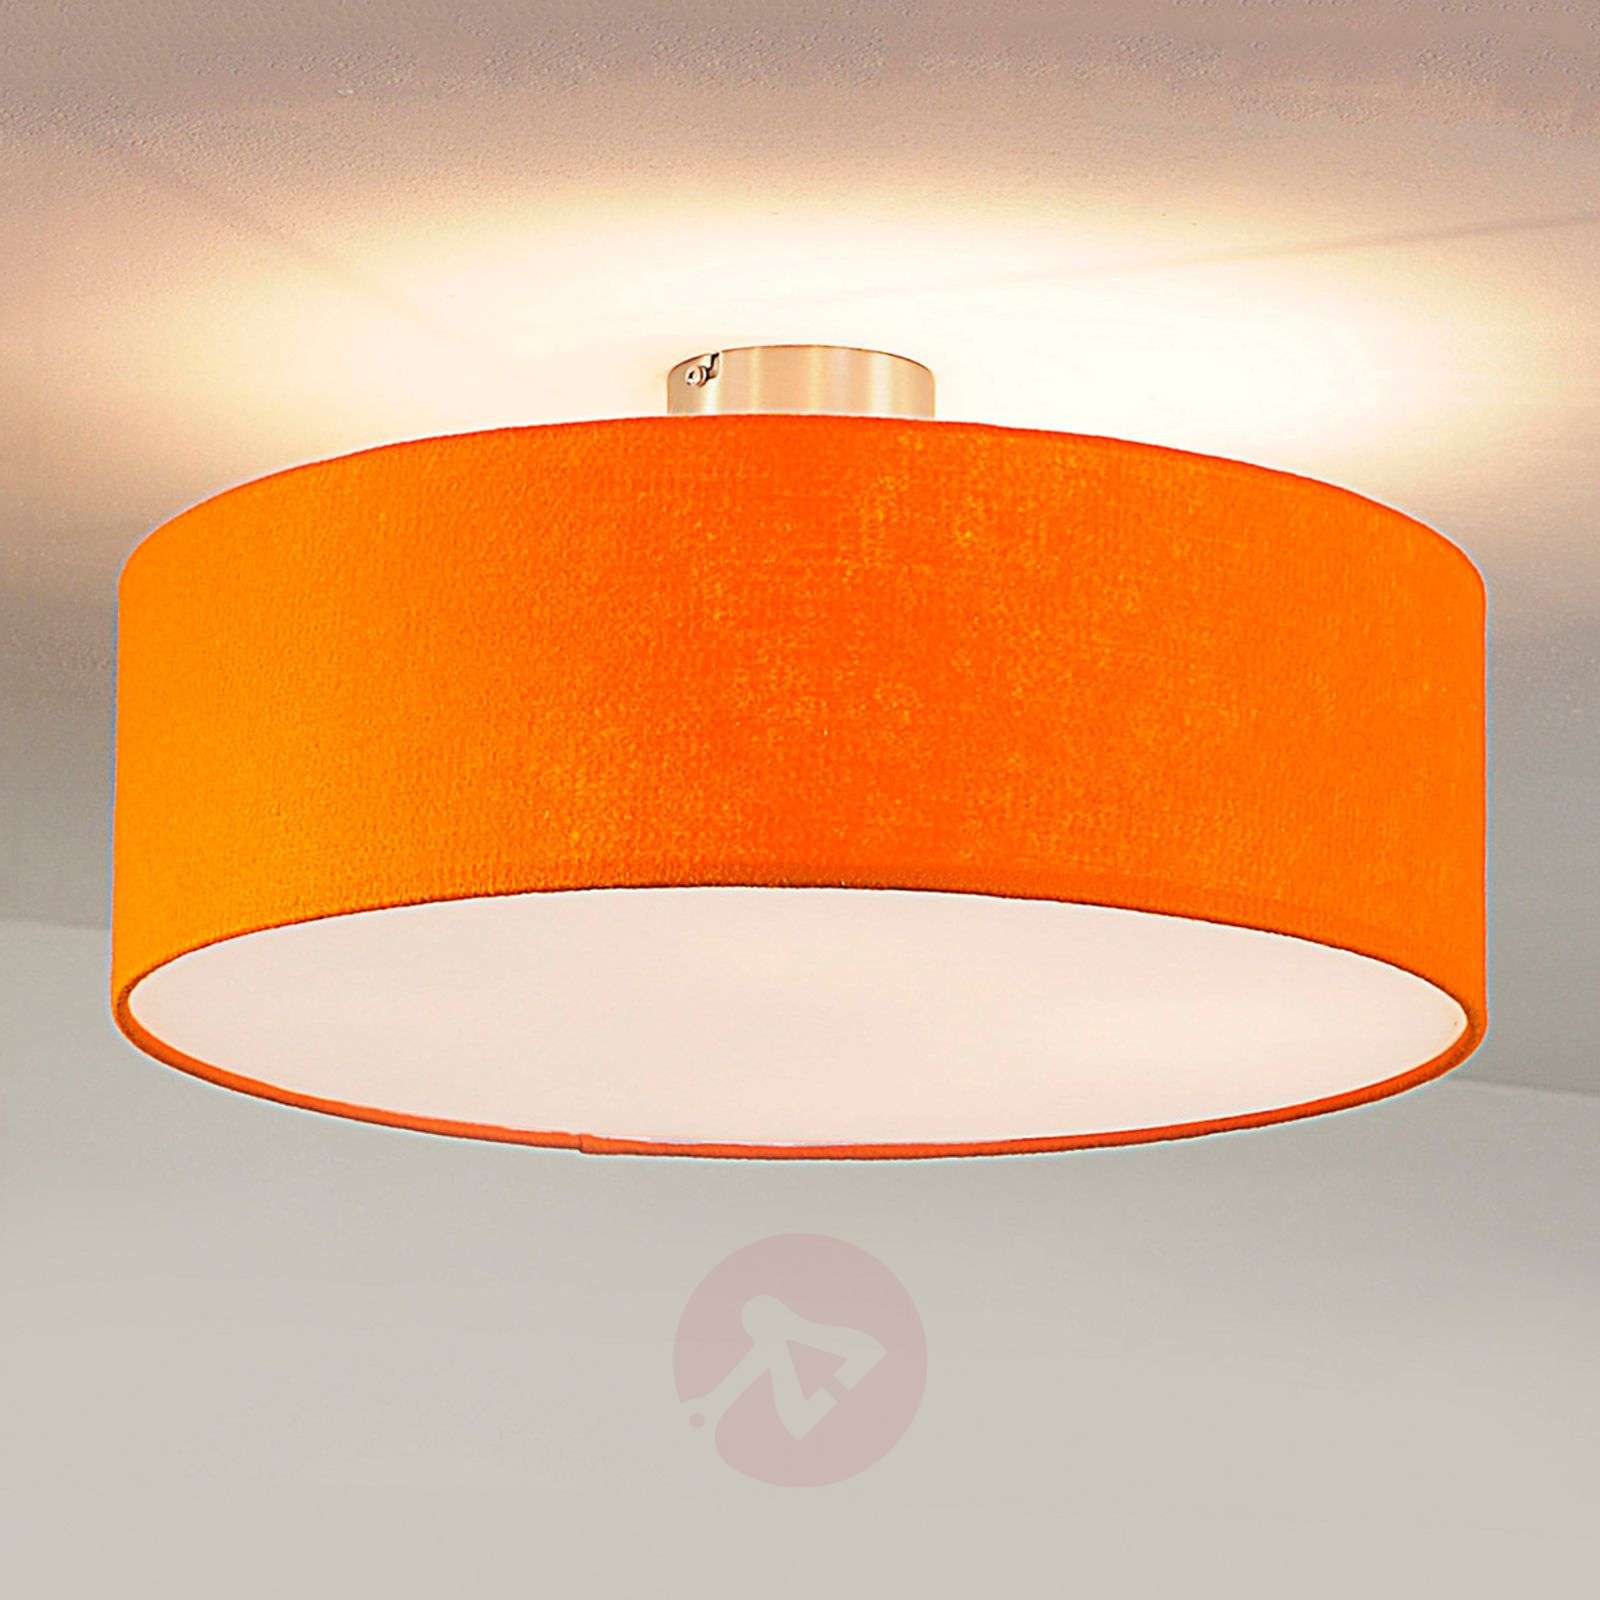 Round Felt Ceiling Light Orange Lights Co Uk